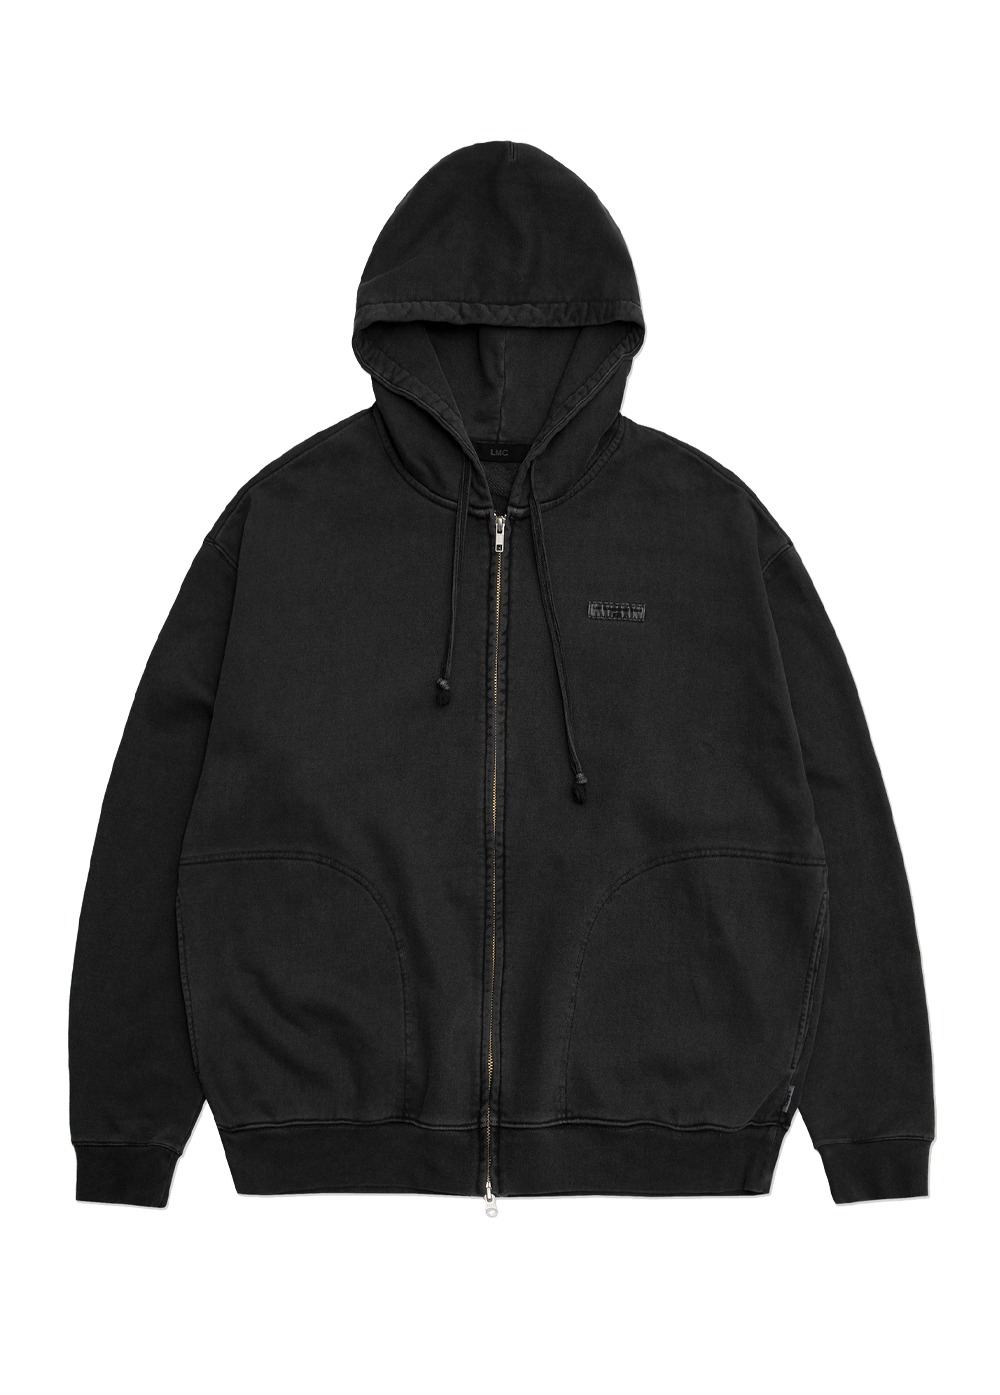 LMC OVERDYED ARCH ZIP-UP HOODIE charcoal